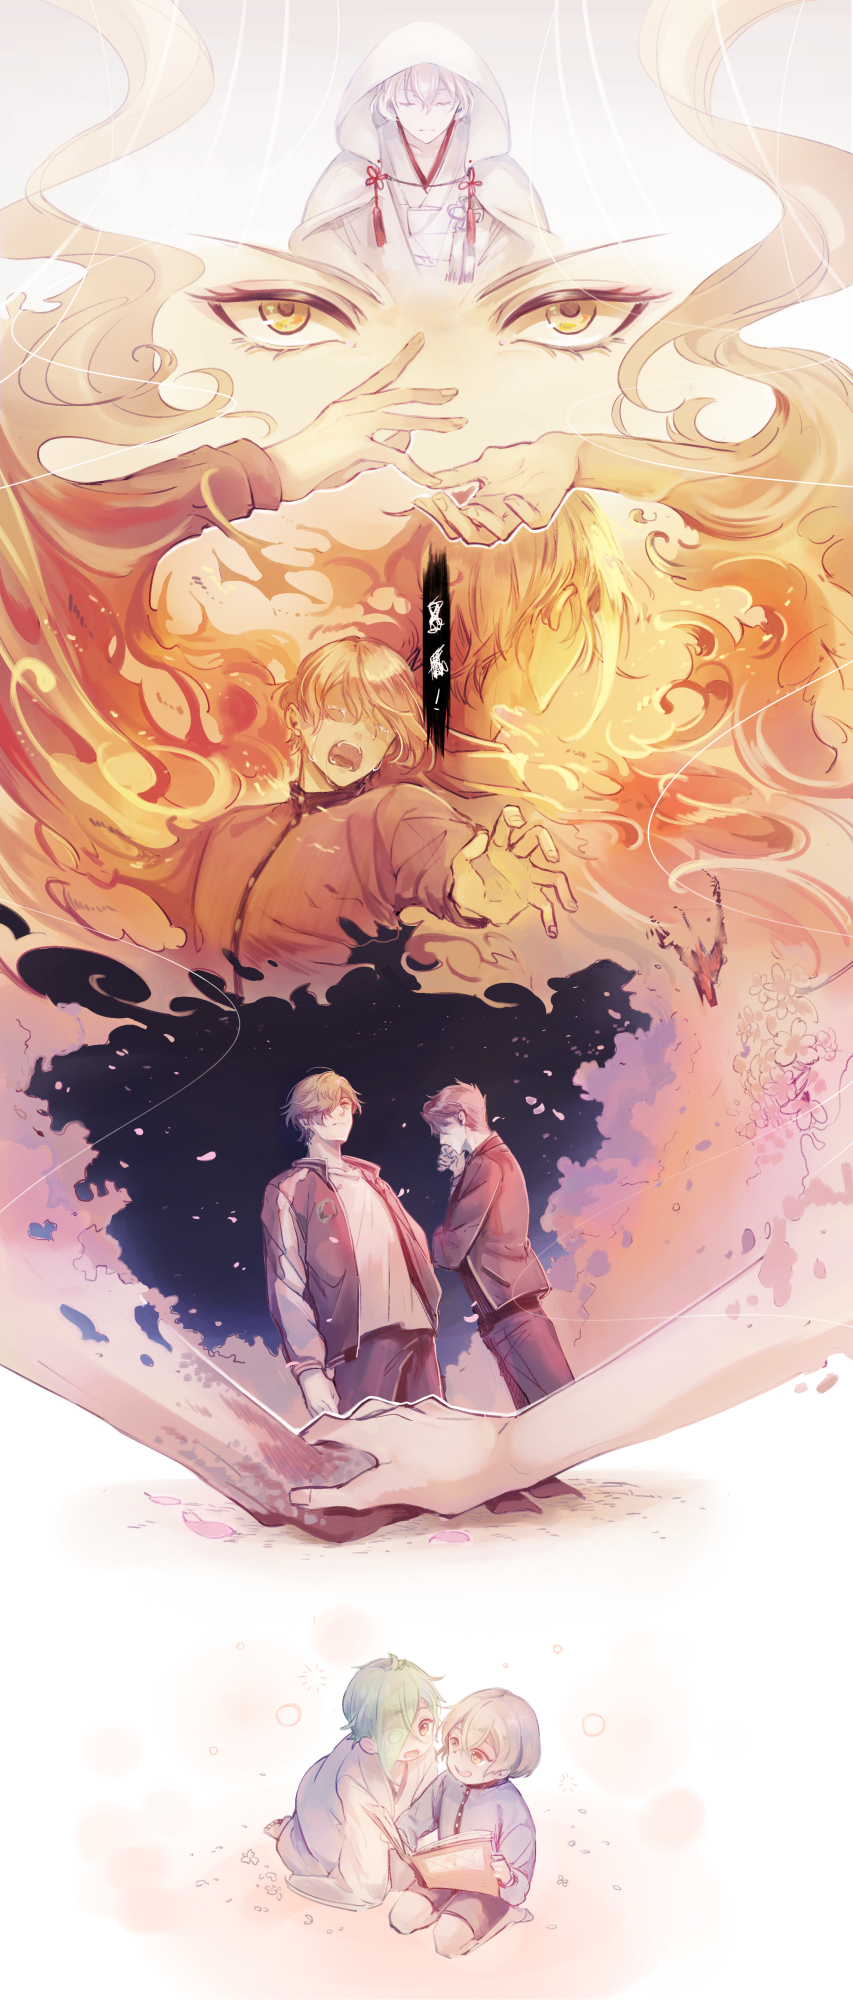 barefoot blonde_hair book burn_scar burning calling character_request child cloak close-up closed_eyes crying dutch_angle eye_contact eyes_visible_through_hair facing_away facing_viewer fire flower frown green_hair hair_over_eyes hair_over_one_eye hand_on_another's_hand higekiri_(touken_ranbu) highres hizamaru_(touken_ranbu) hood hood_up hooded_cloak jacket japanese_clothes kneeling leaning_forward long_sleeves looking_at_another looking_at_viewer multiple_boys night night_sky one_eye_covered open_book out_of_frame outstretched_hand pants petals profile reaching reaching_out reading scar seiza shichimi_(ftlvampire32) shorts sitting sky sleeves_past_fingers sleeves_past_wrists smoke standing streaming_tears tassel tears touken_ranbu translation_request uguisumaru wind yellow_eyes